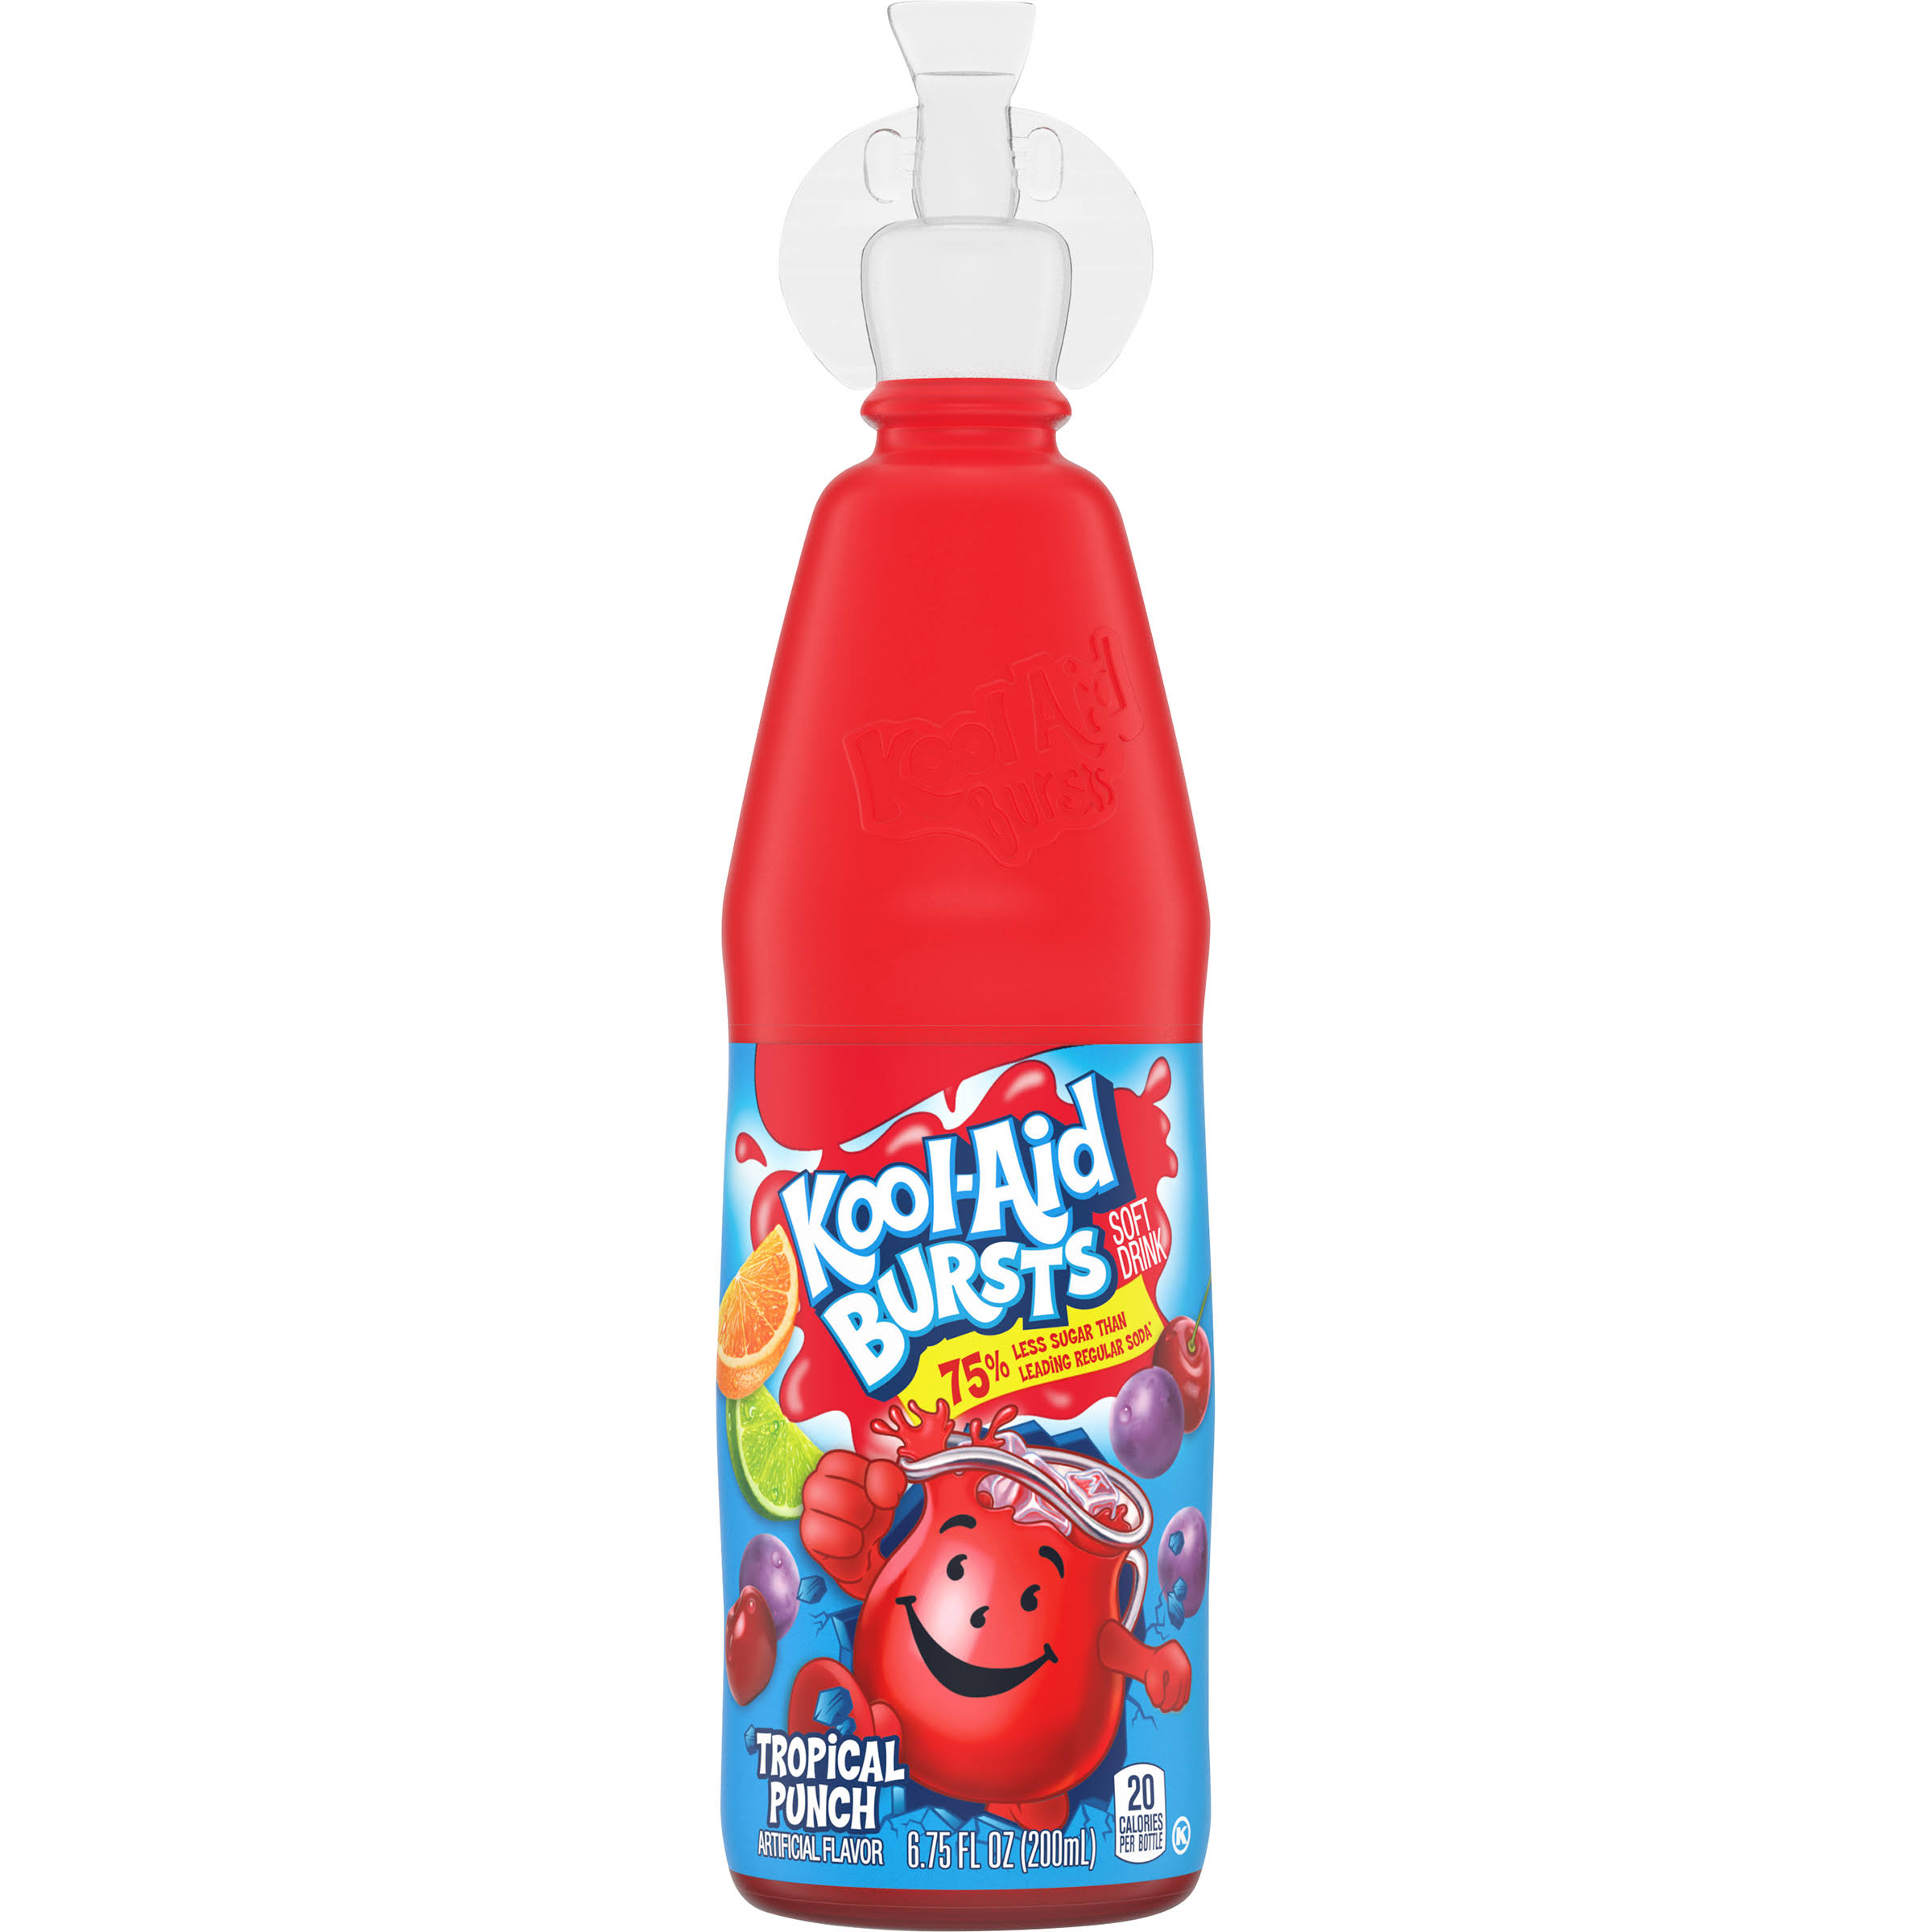 Kool Aid Bursts Soft Drink, Tropical Punch - 6.75 fl oz